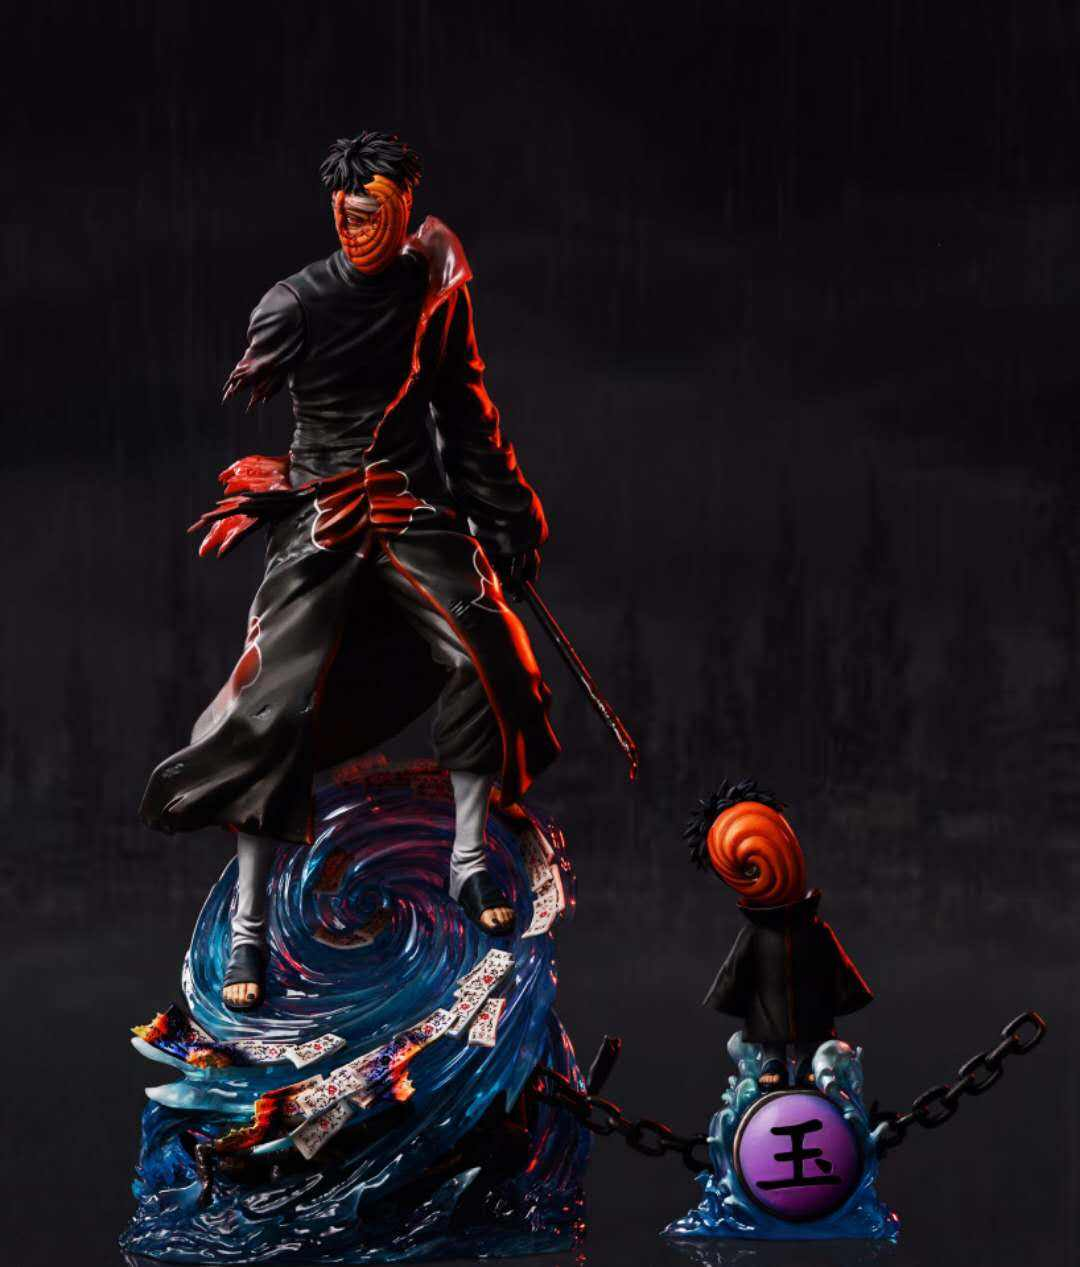 Figurine <span class=keywords><strong>Naruto</strong></span> GK CW <span class=keywords><strong>Akatsuki</strong></span> Uchiha Obito, objet de collection, taille 1:7